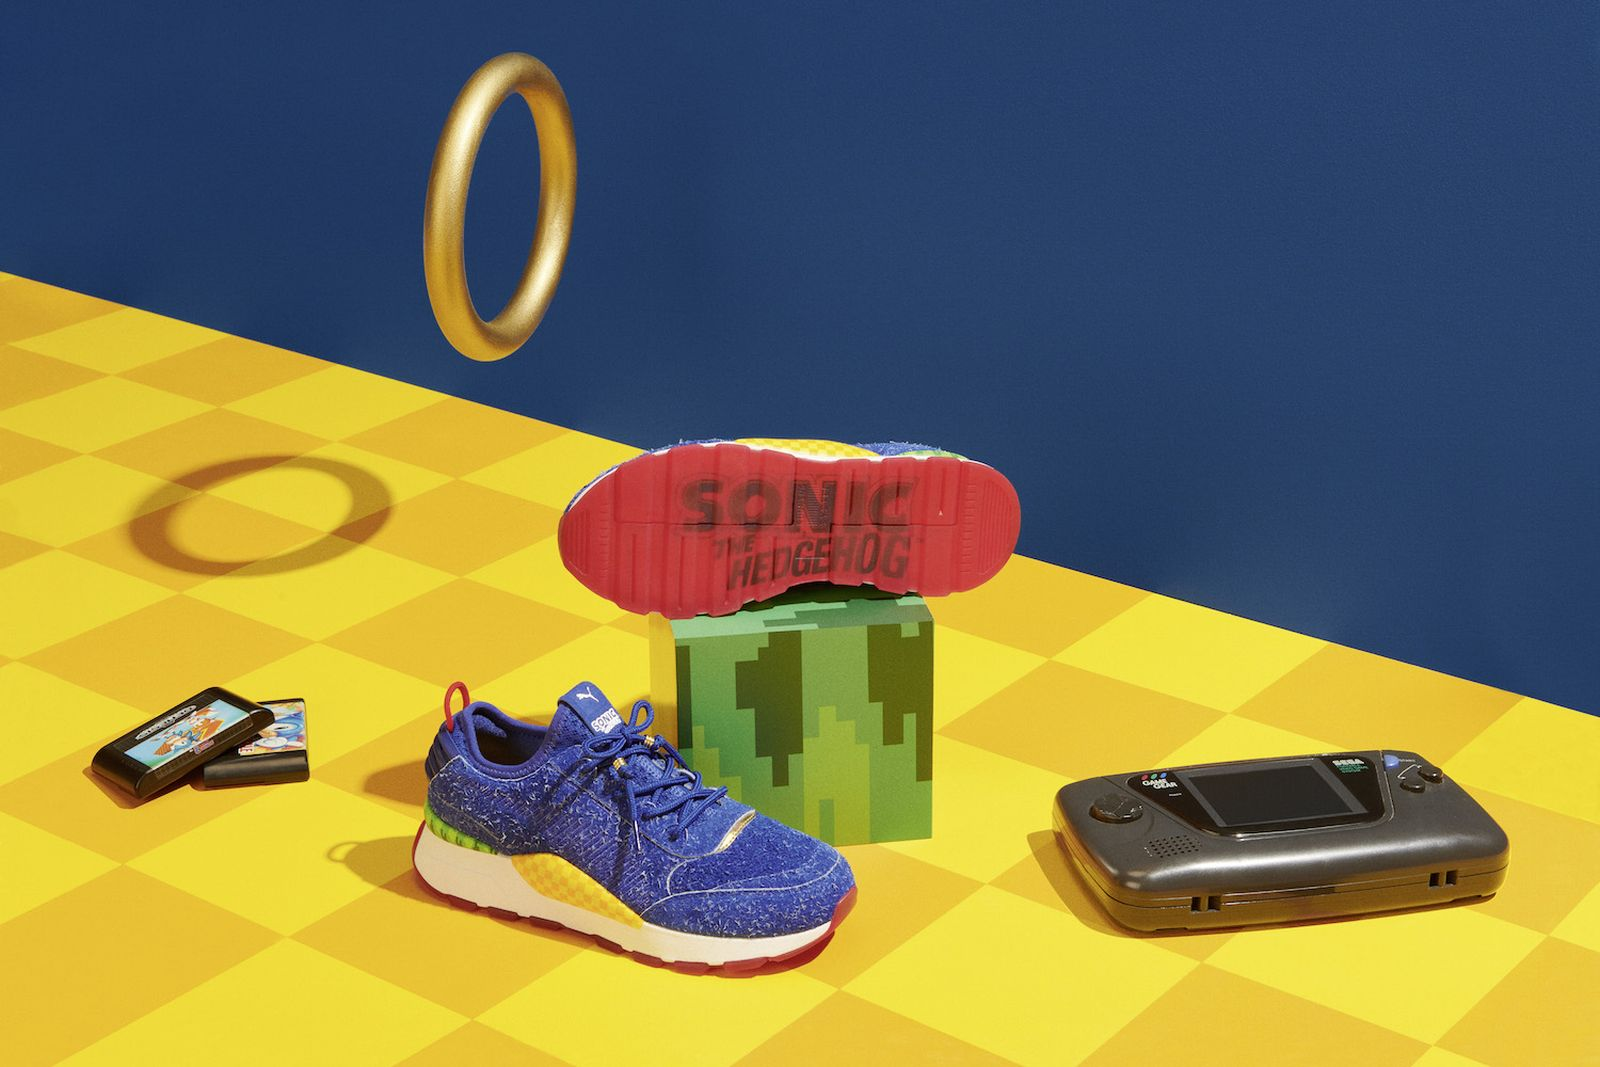 puma-sega-rs-0-sonic-and-dr-eggman-release-date-price-02